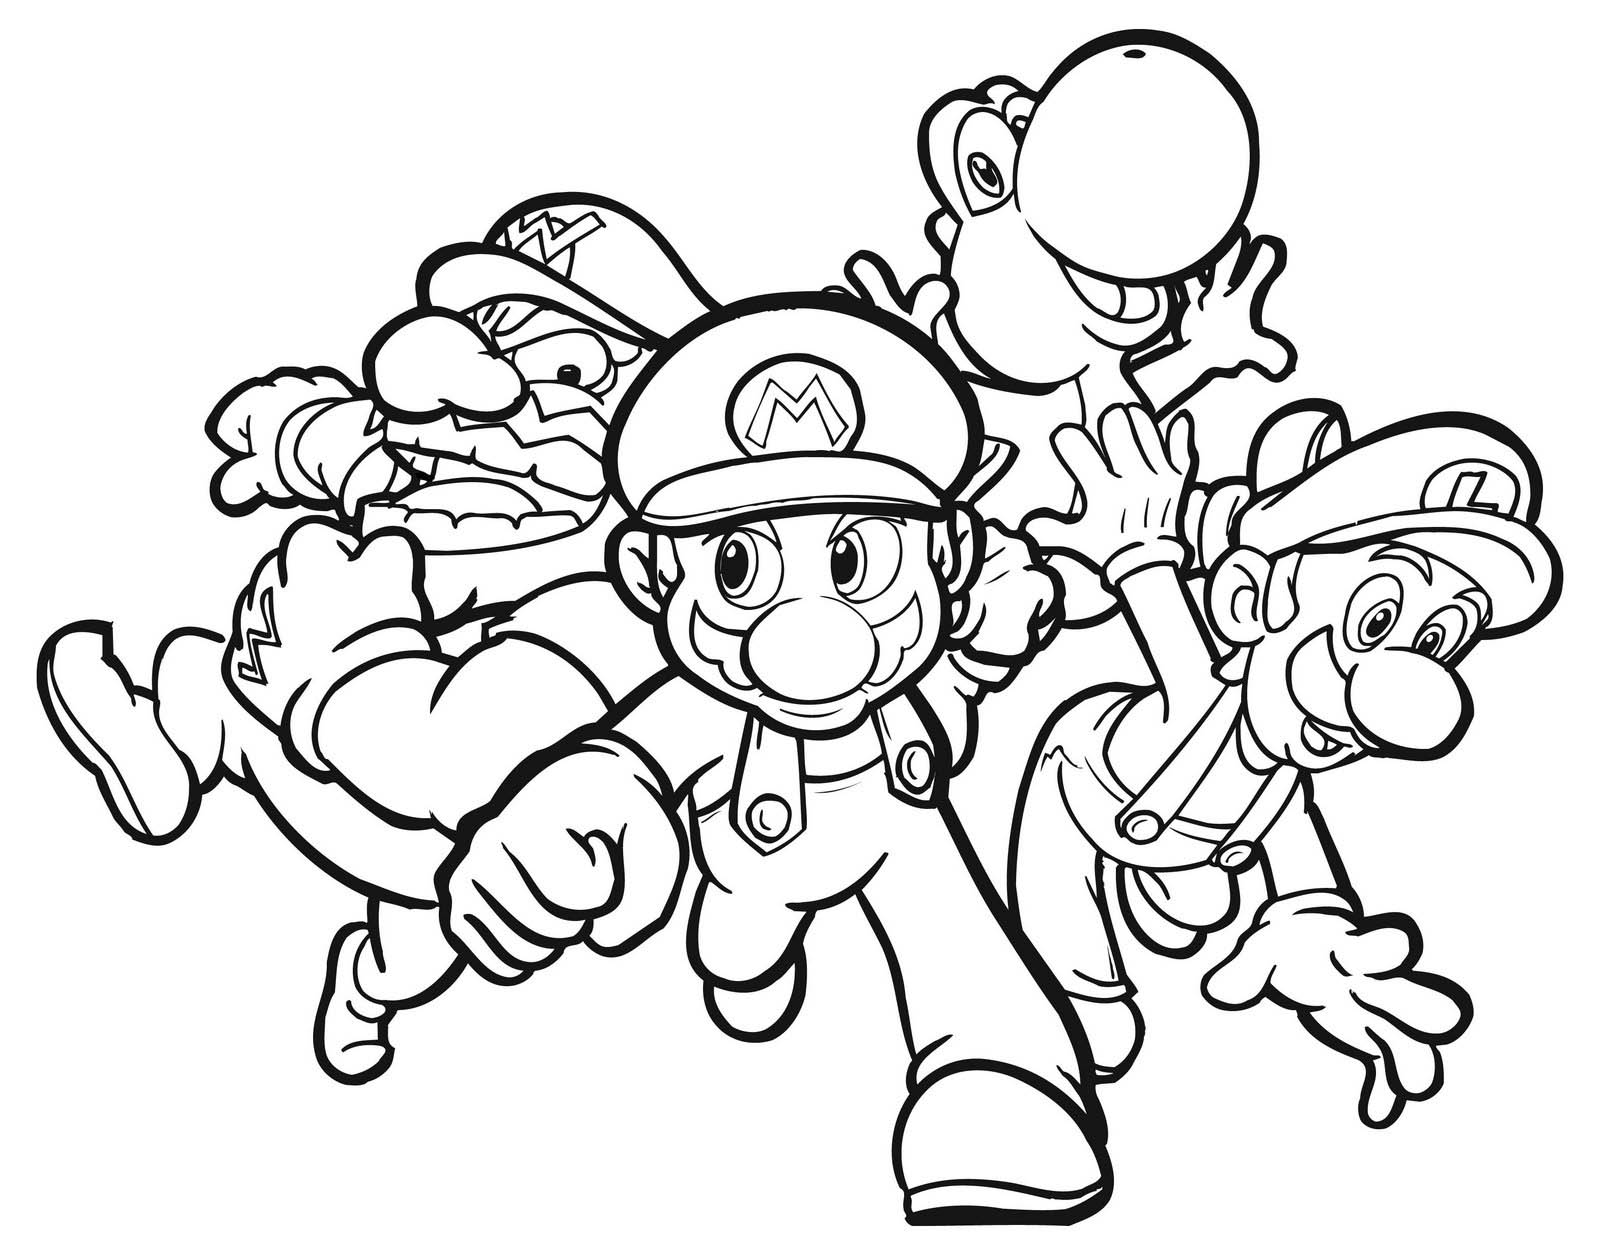 mario coloring official mario coloring pages gonintendo mario coloring